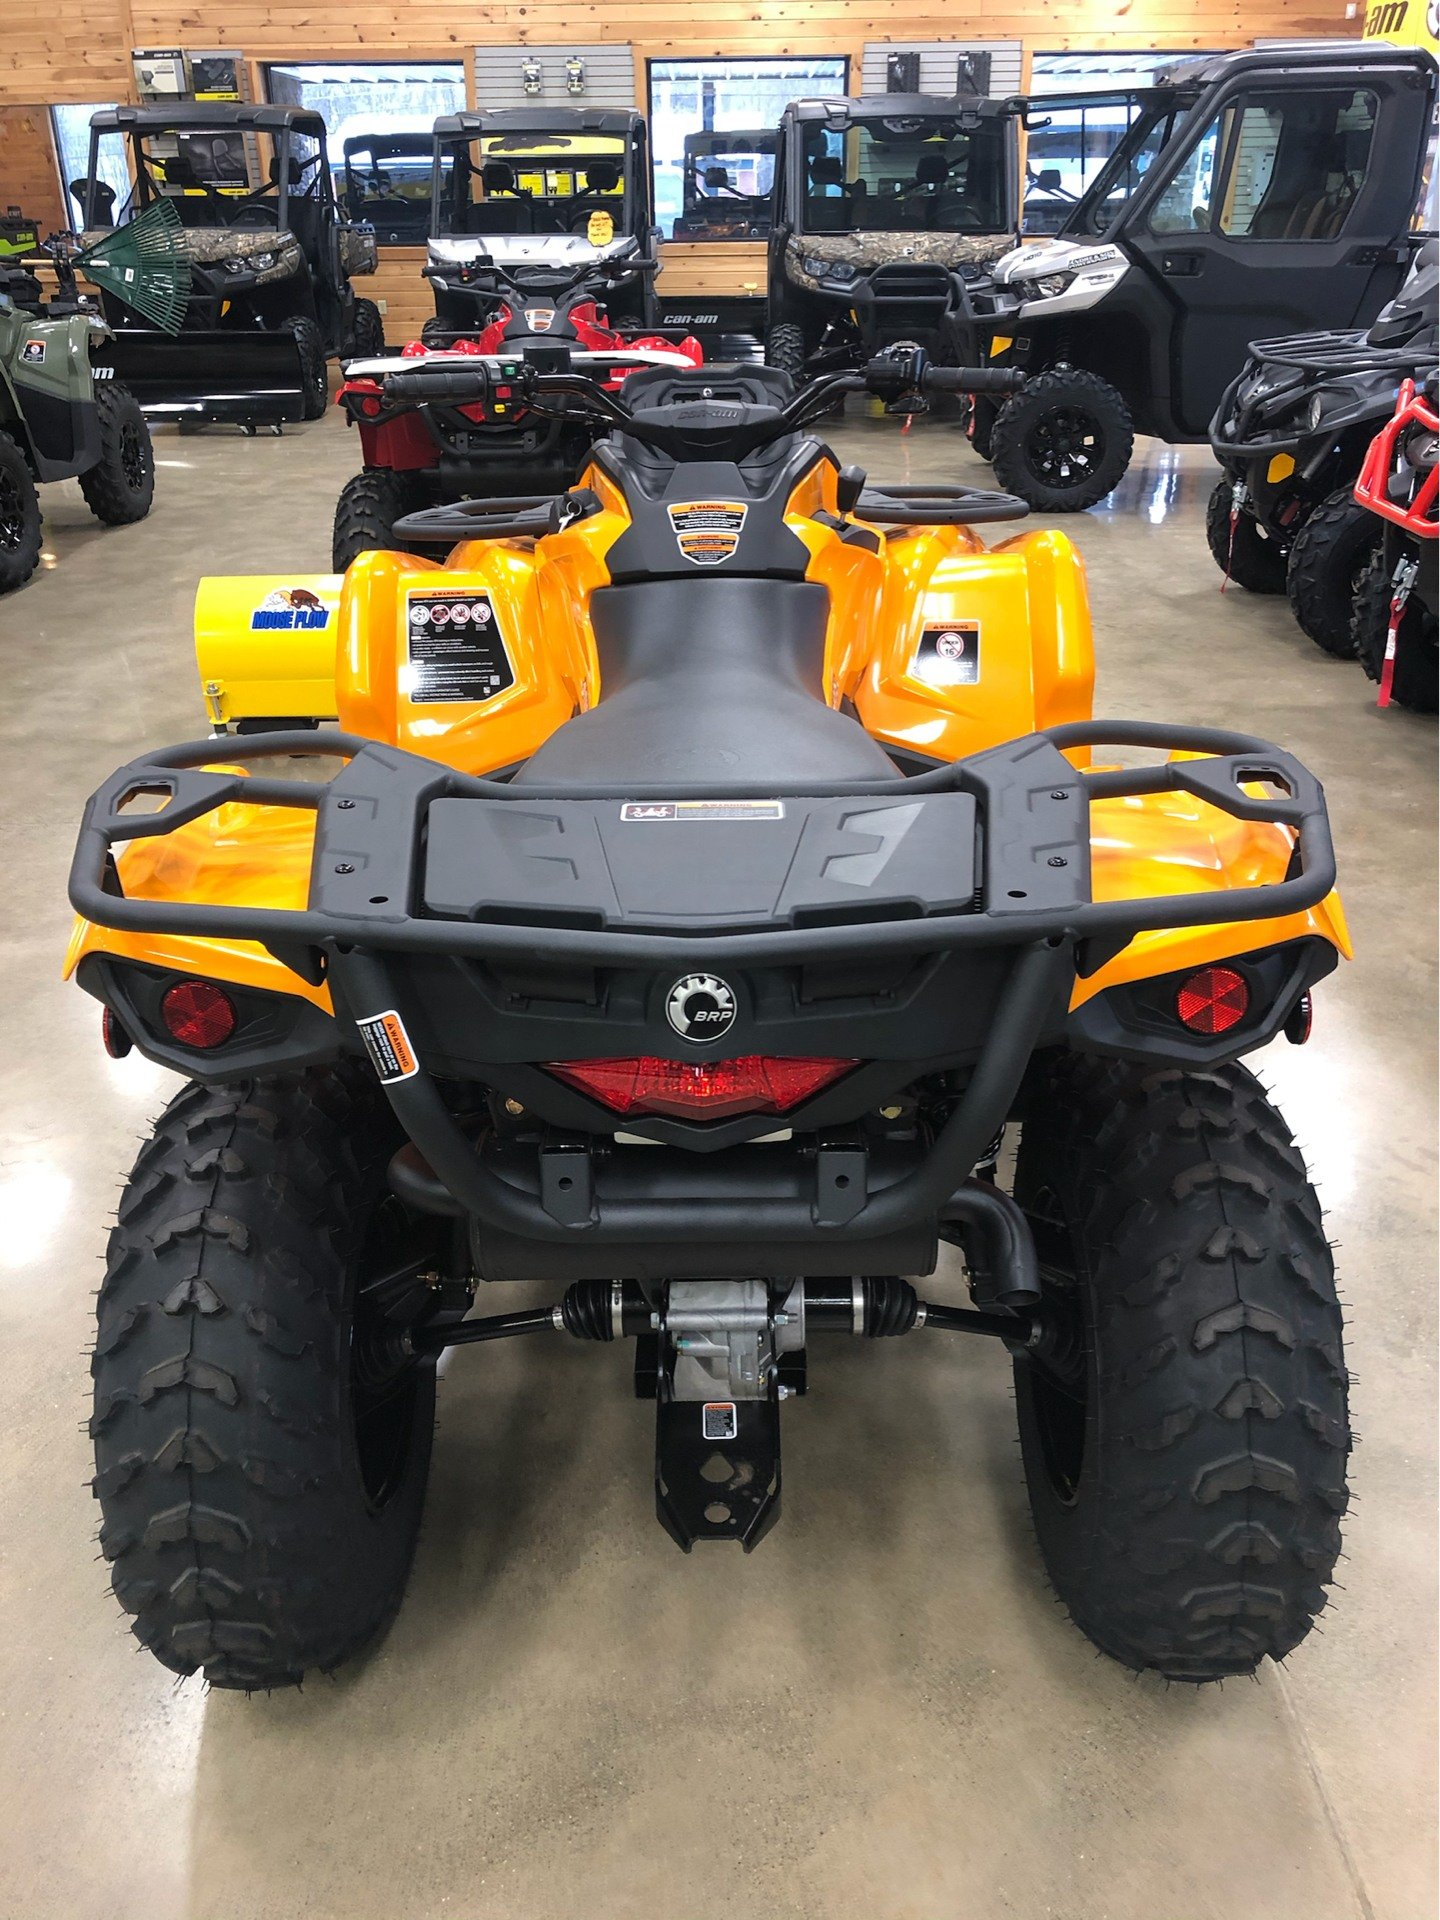 2020 Can-Am Outlander DPS 570 in Montrose, Pennsylvania - Photo 5